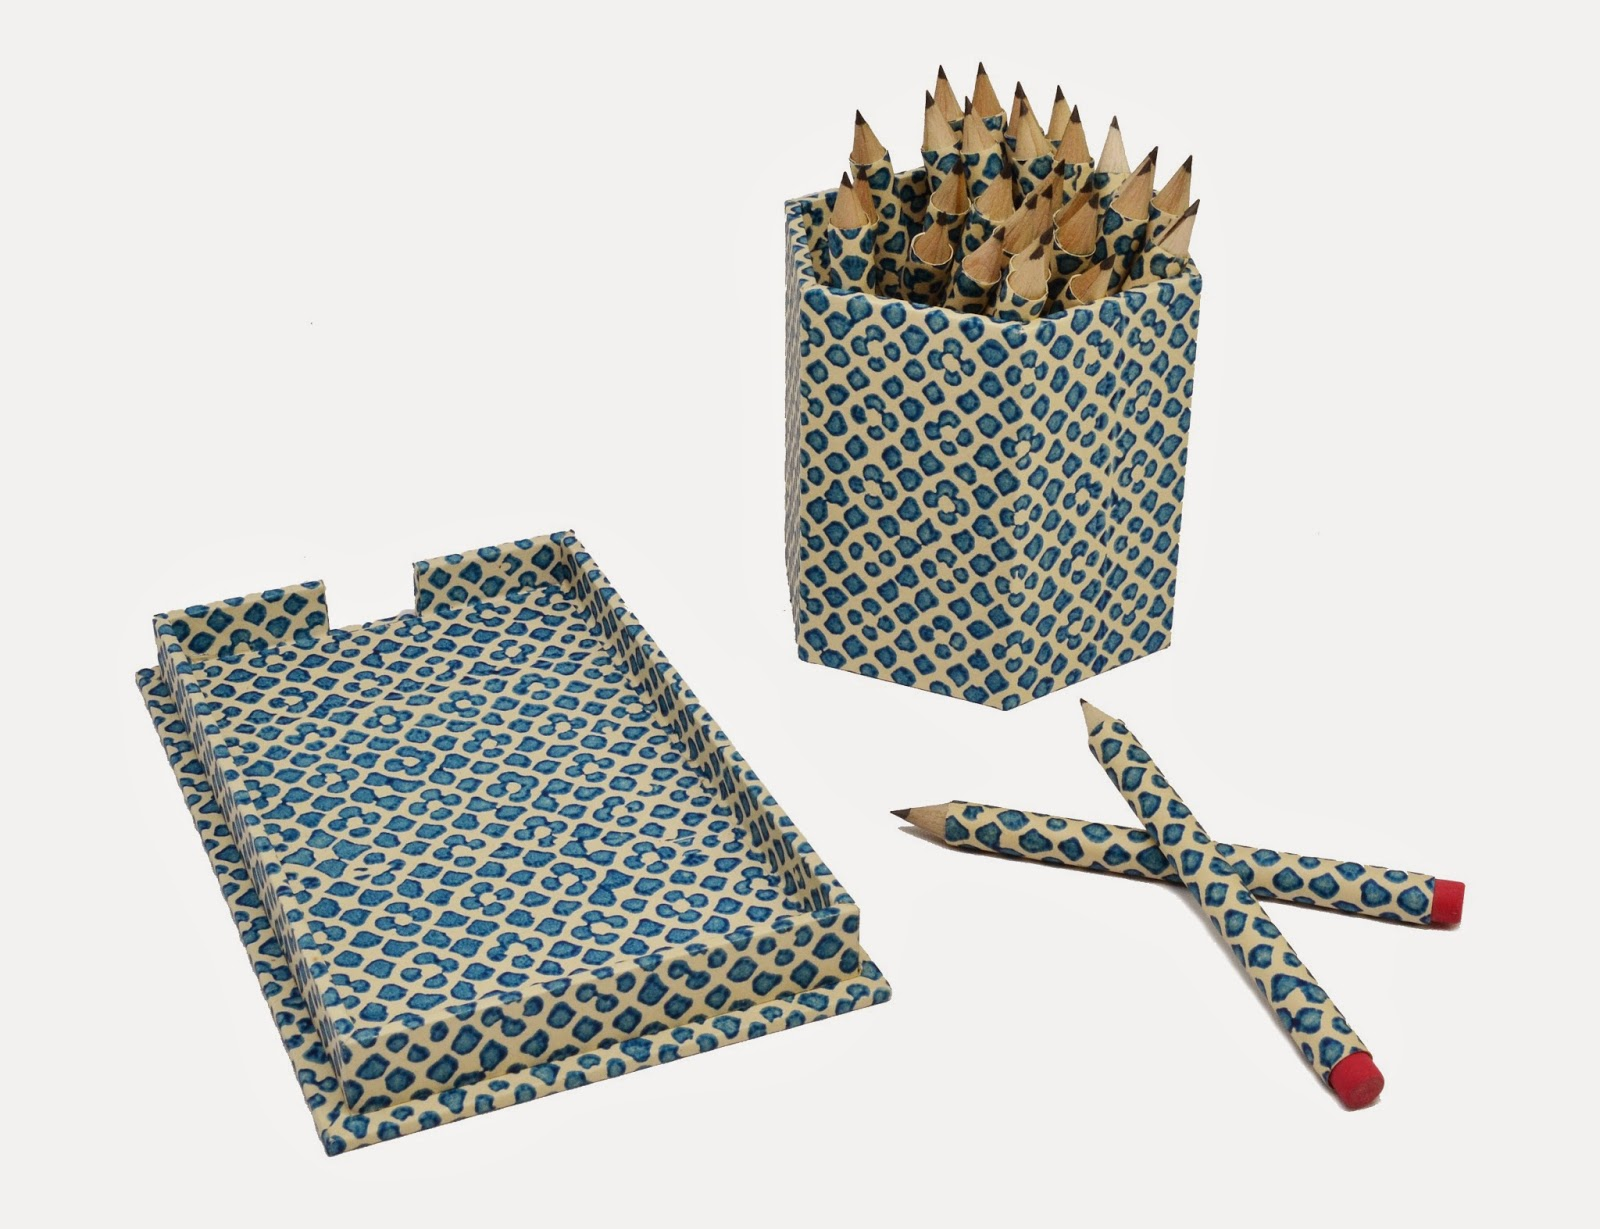 Hexagonal Pencil Cup and Note Tray by Parvum Opus